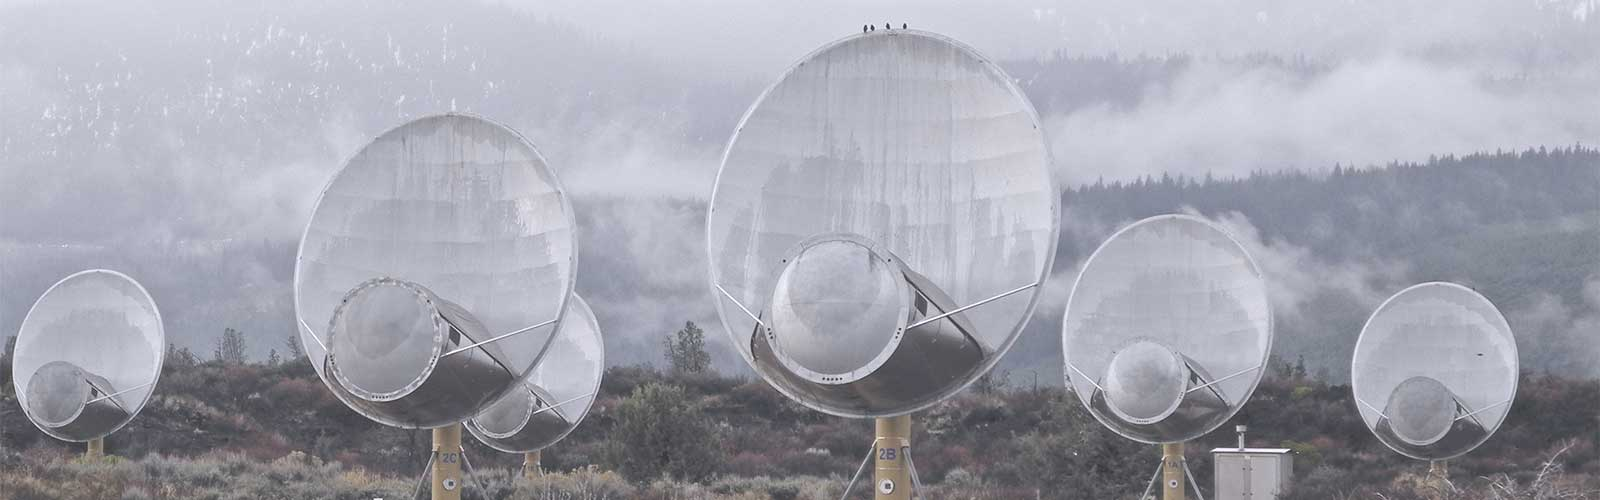 Allen Telescope Array used by the Search for Extraterrestrial Intelligence project in Hat Creek, California